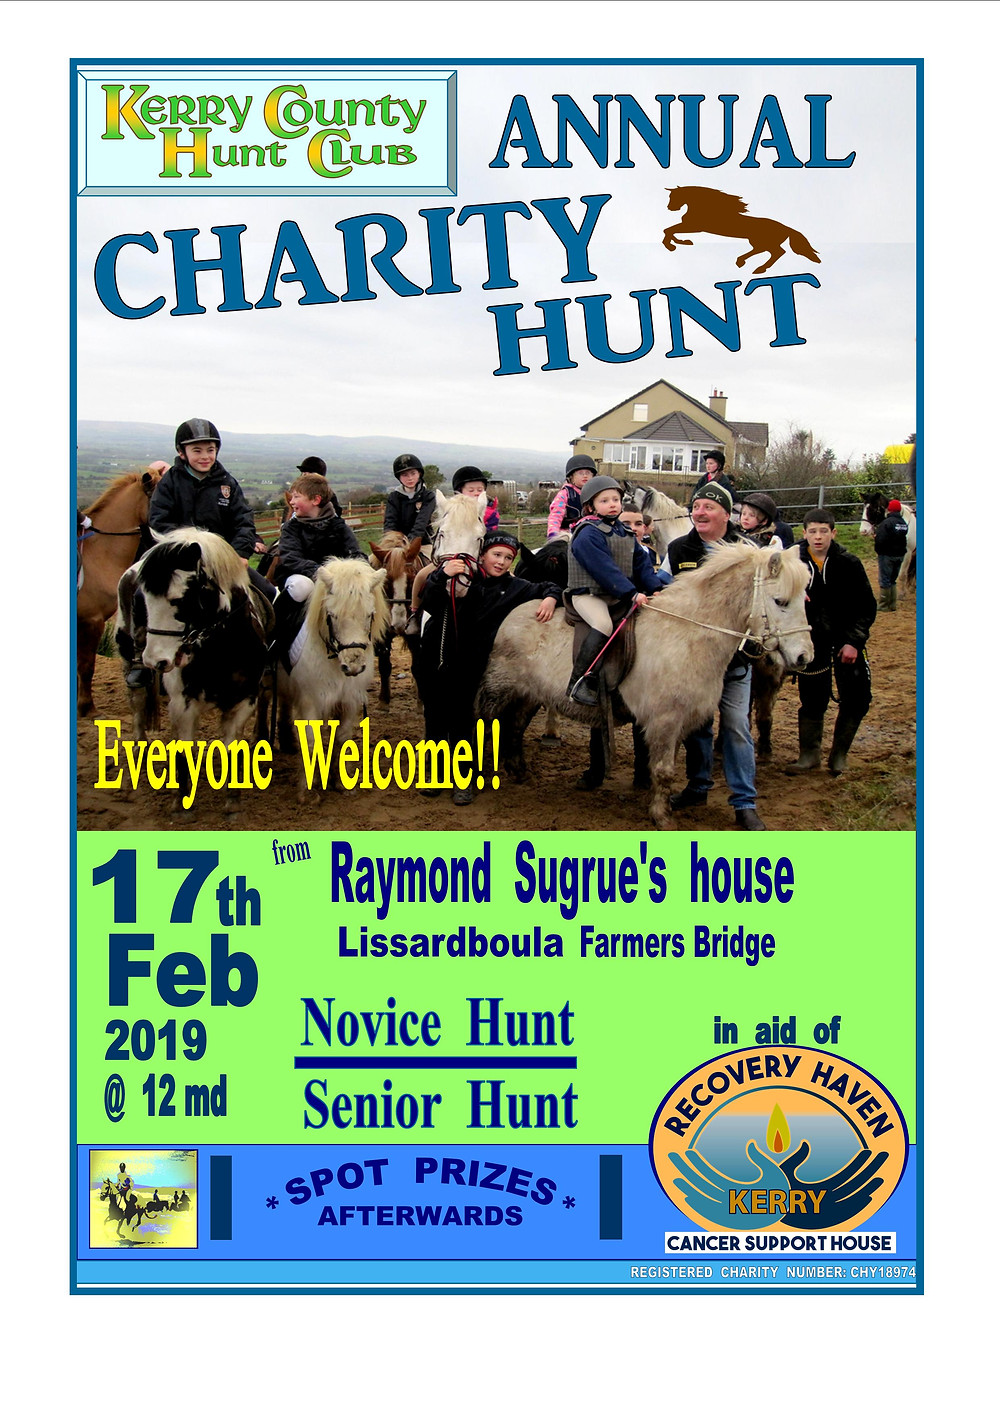 For all you Horsey enthusiasts join Raymond Sugrue for his annual event in aid of Recovery Haven Kerry!